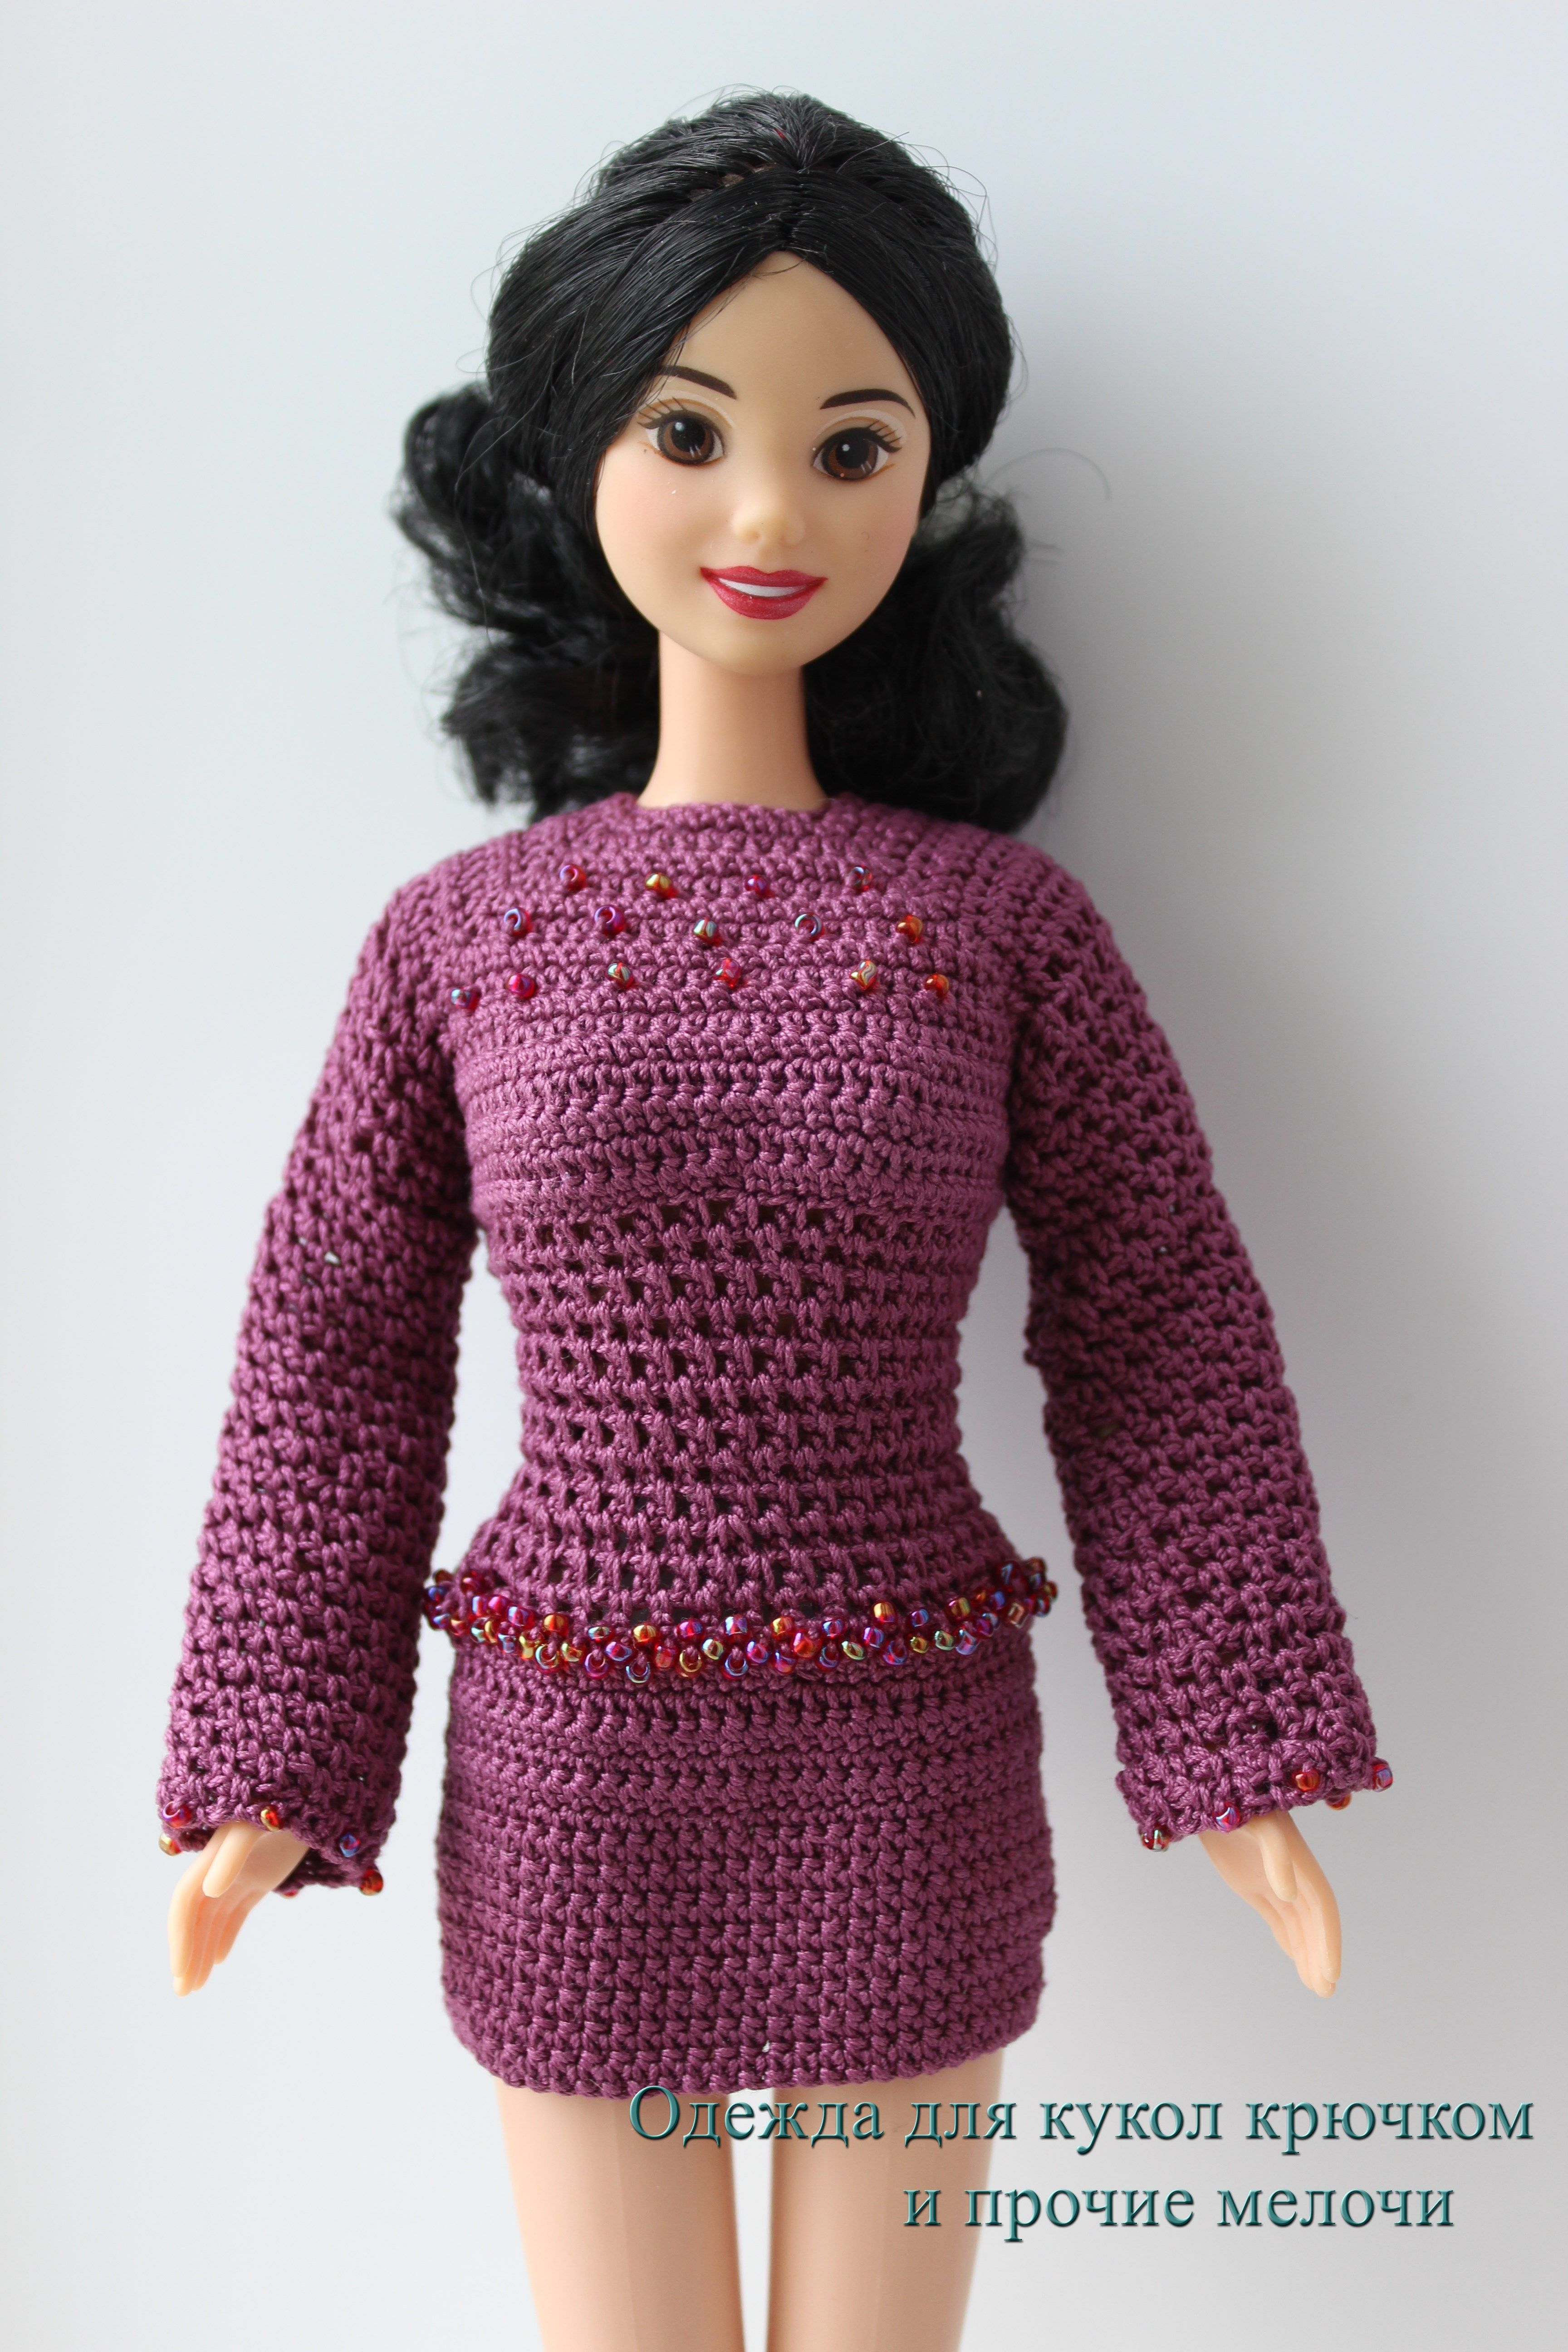 Pin von Juliya Nikiforova auf Barbie crotchet dress of mine ...